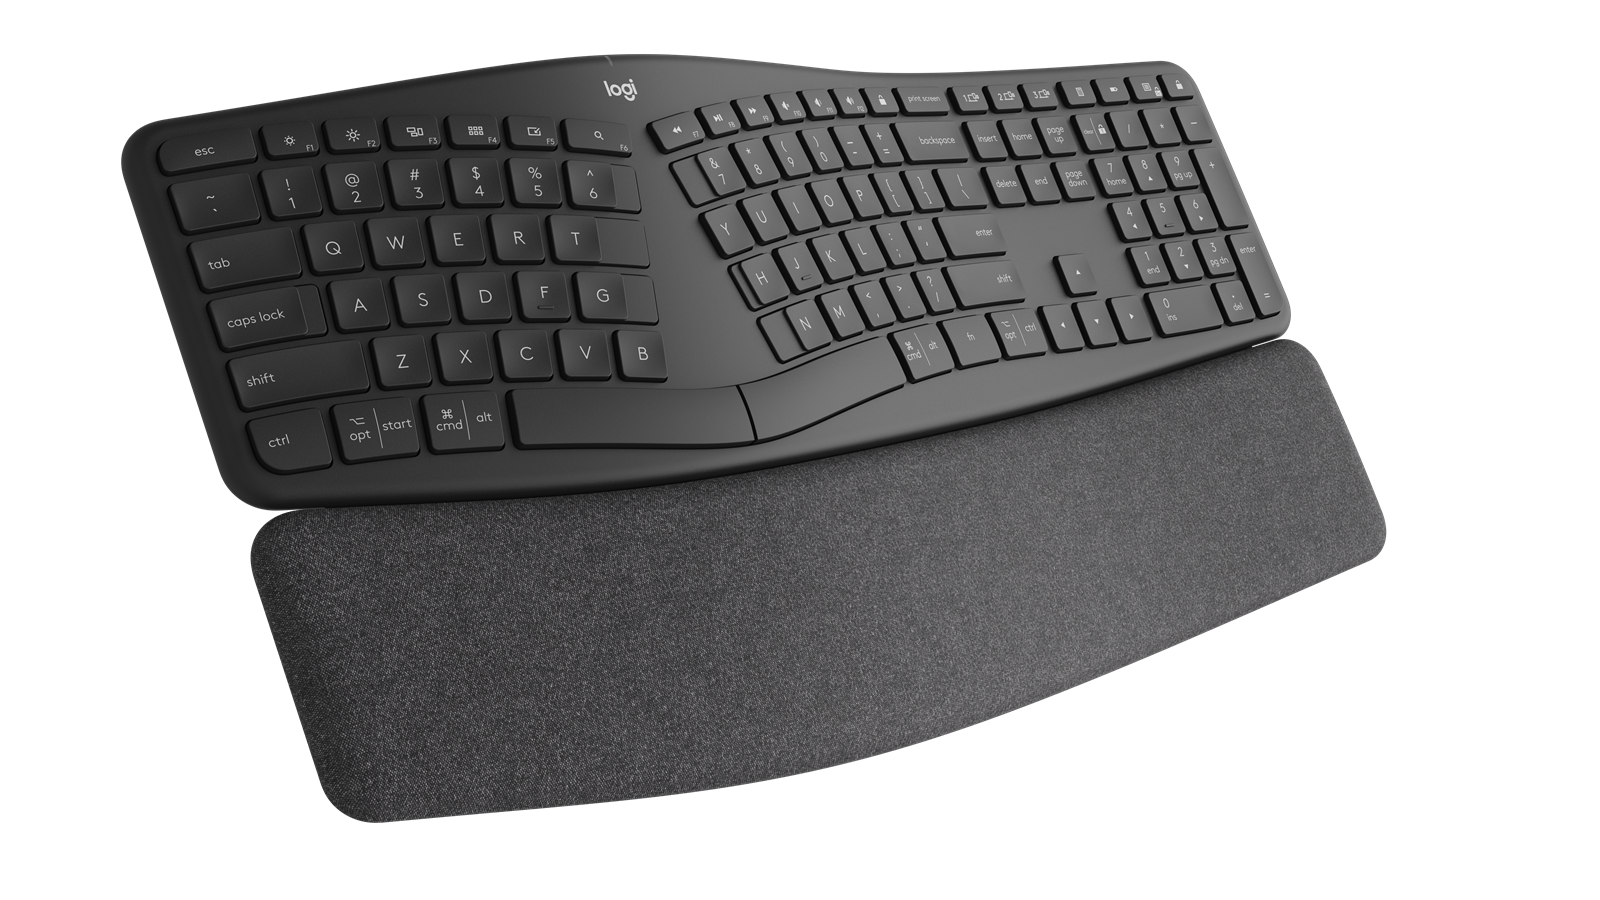 A topdown view of the ERGO k860, showing a large wrist bar.